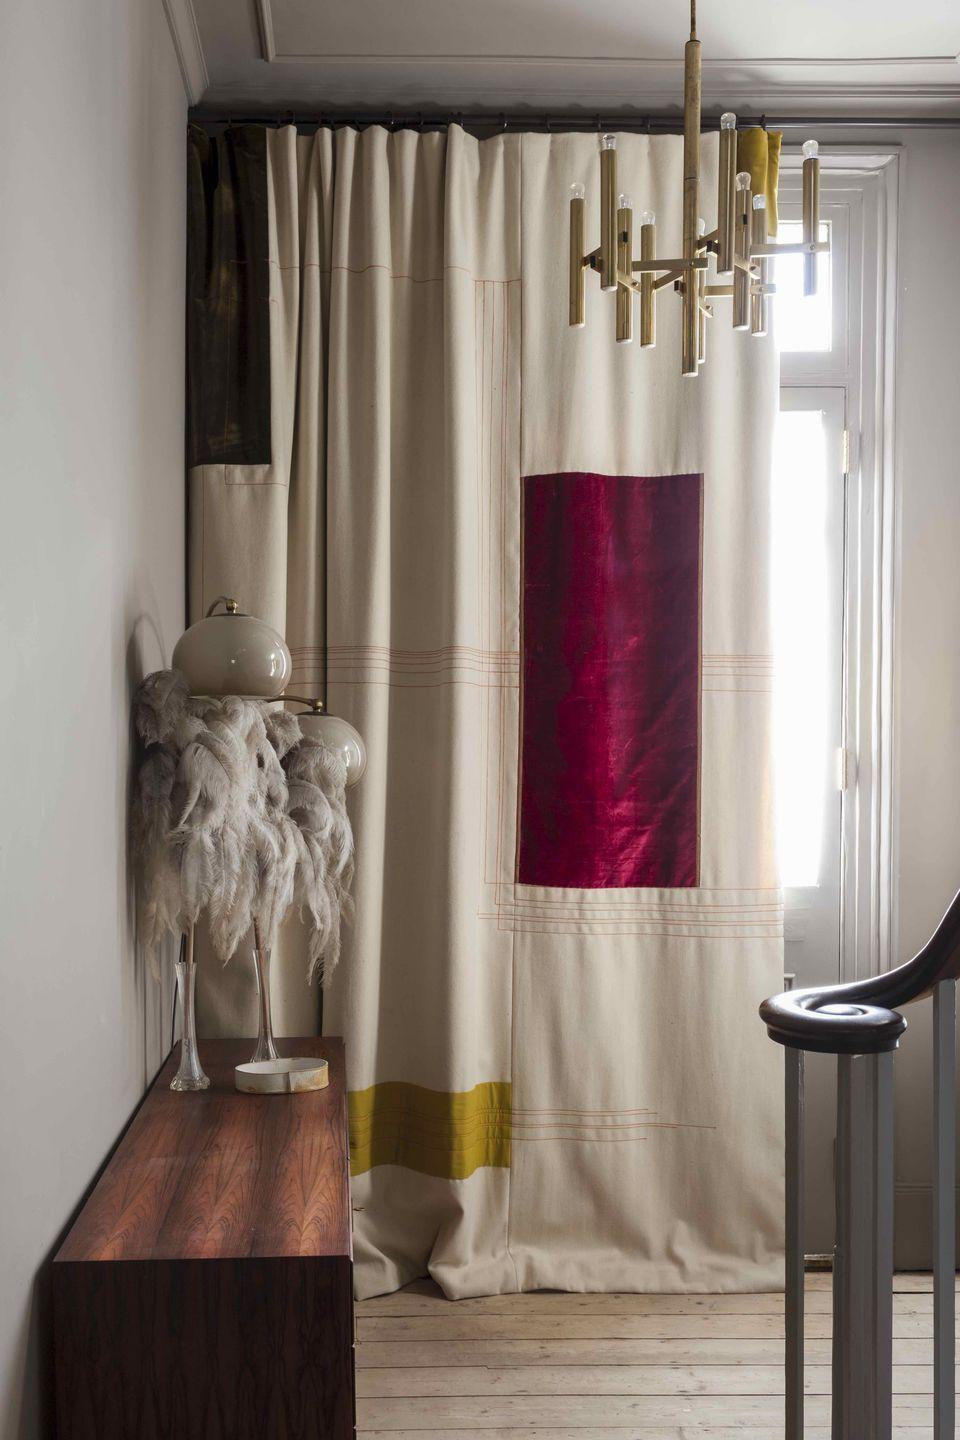 """<p>Crafted from vintage fabrics sourced by founder Lucy Bathurst, Nest's bespoke curtains, blinds and home textiles could be likened to modern works of art with their geometric compositions. <a href=""""http://nestdesign.co.uk/"""" rel=""""nofollow noopener"""" target=""""_blank"""" data-ylk=""""slk:nestdesign.co.uk"""" class=""""link rapid-noclick-resp"""">nestdesign.co.uk</a></p>"""